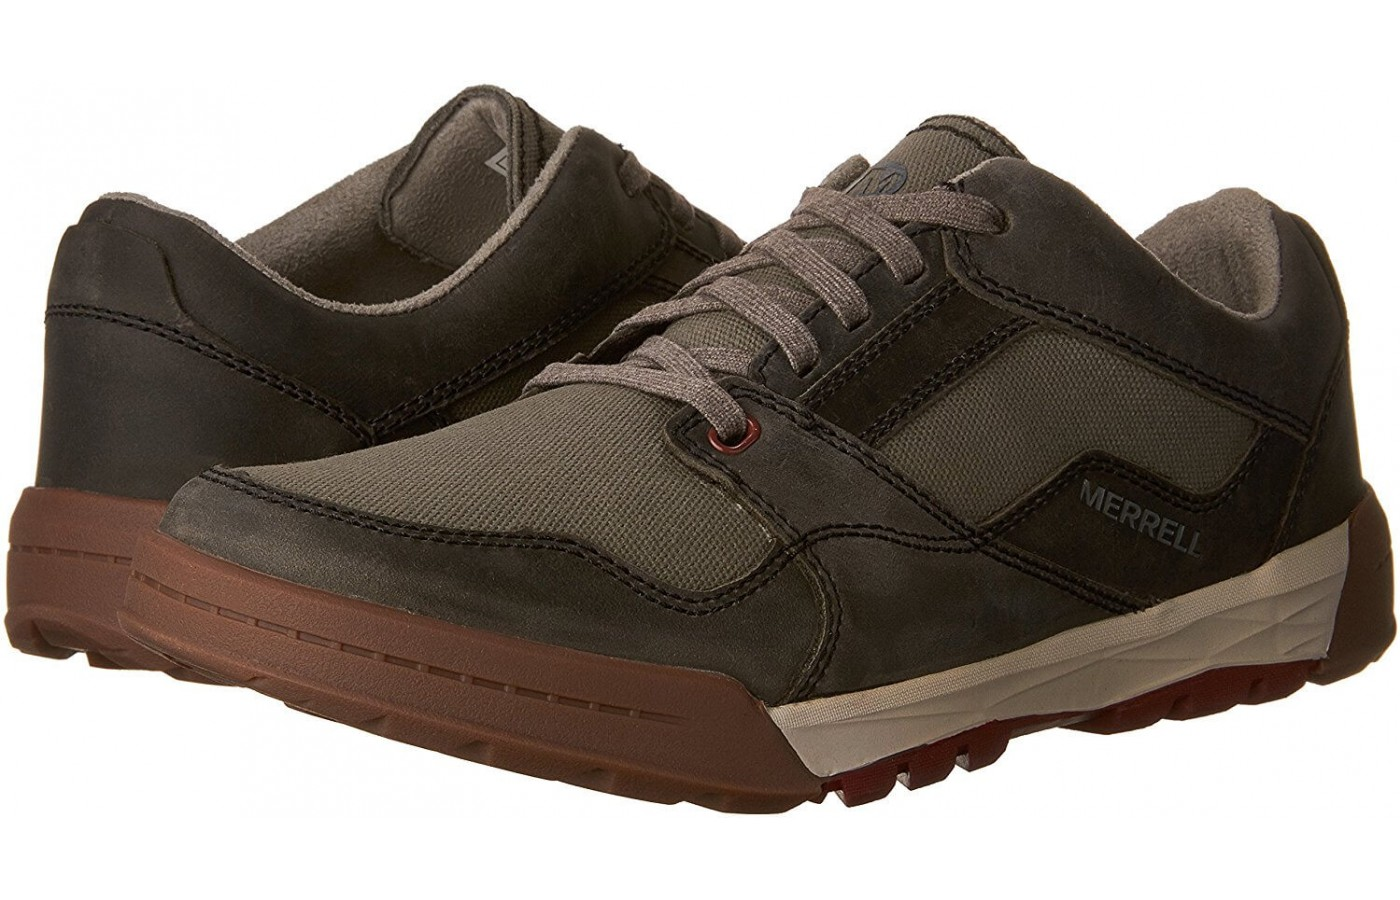 The Merrell Berner Shift Lace features a leather and canvas upper